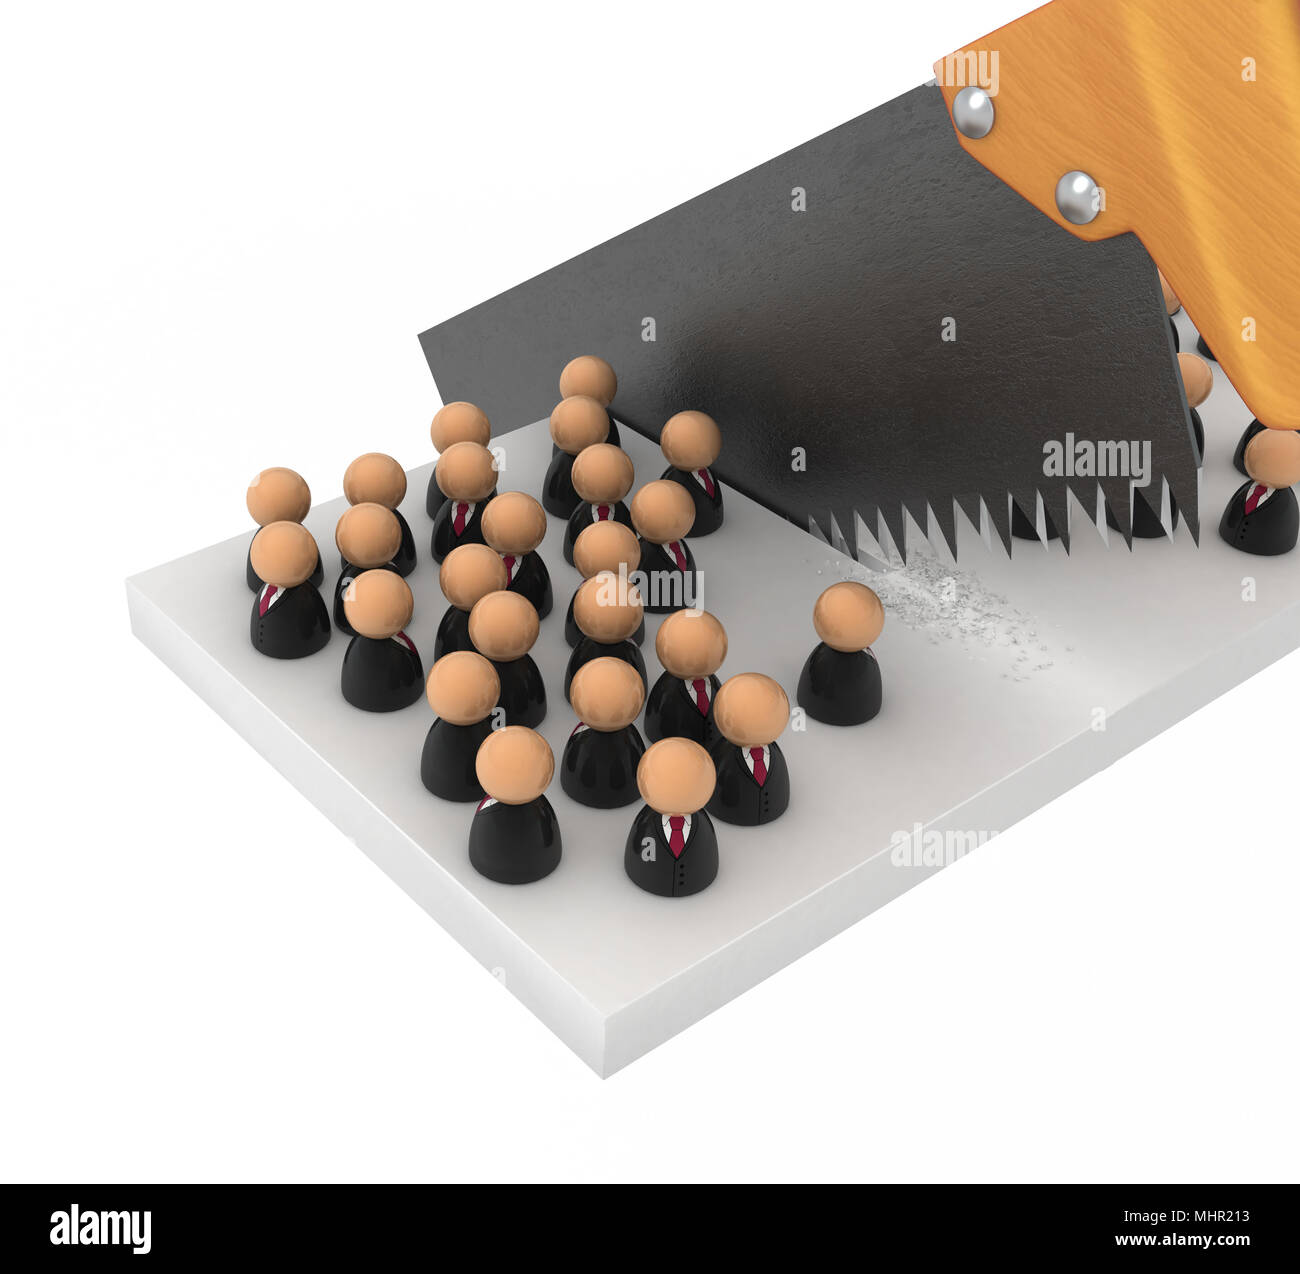 Crowd of small symbolic 3d figures, over white - Stock Image